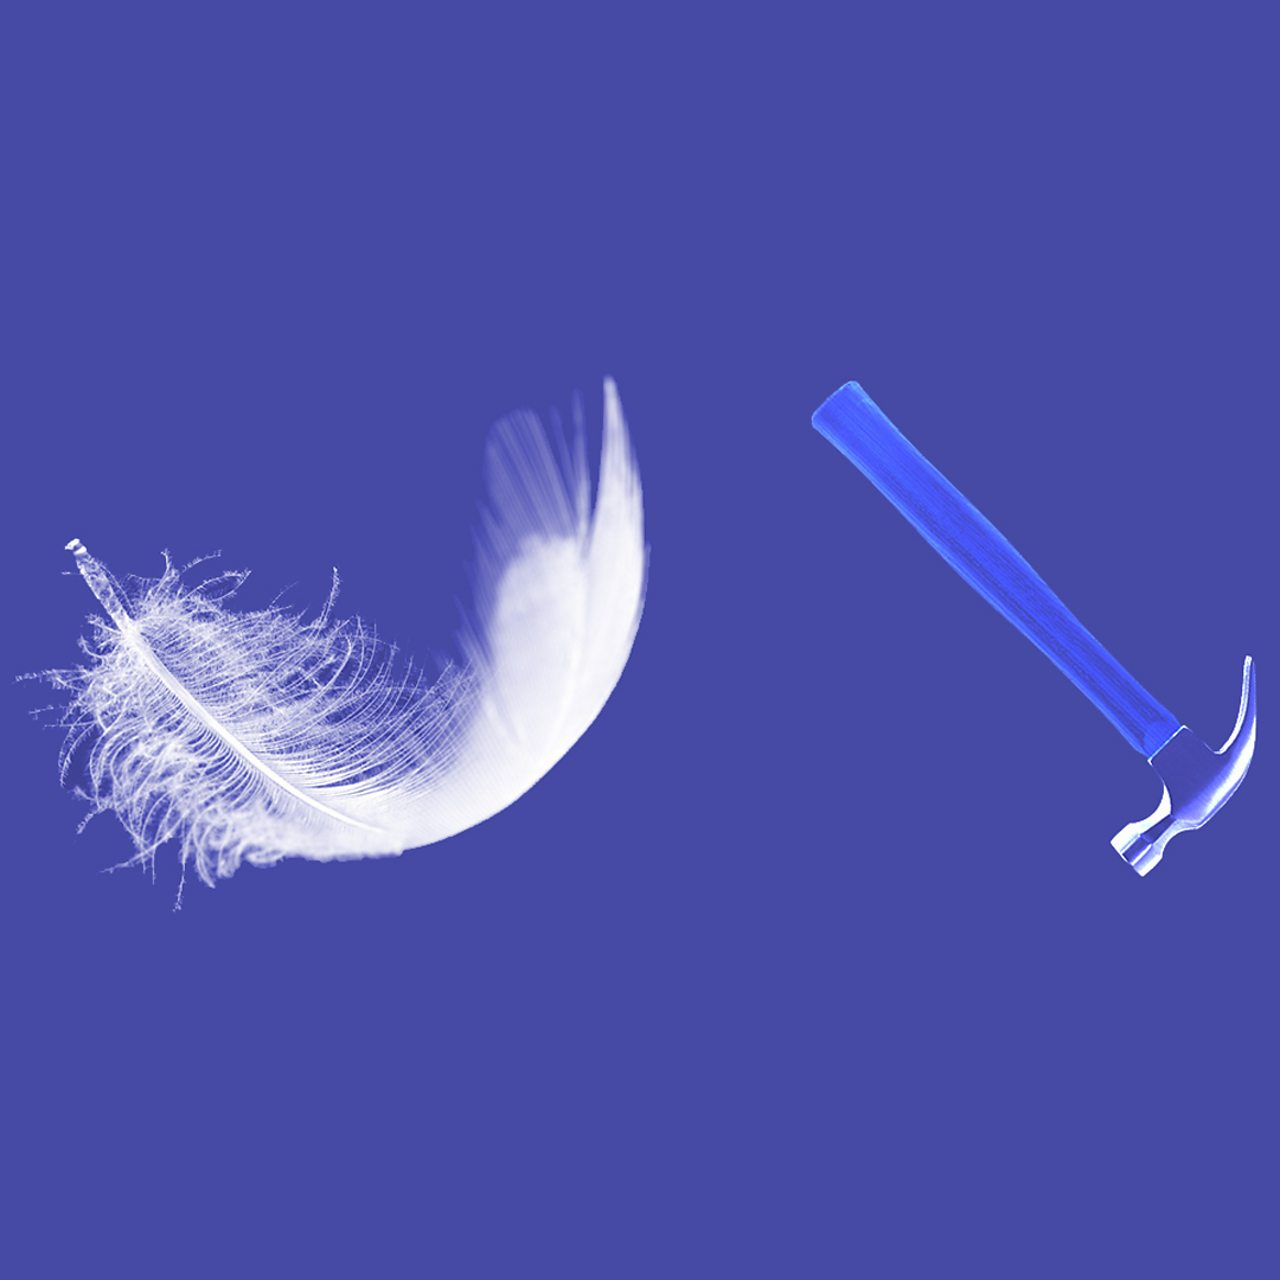 Which falls faster - a feather or a hammer?